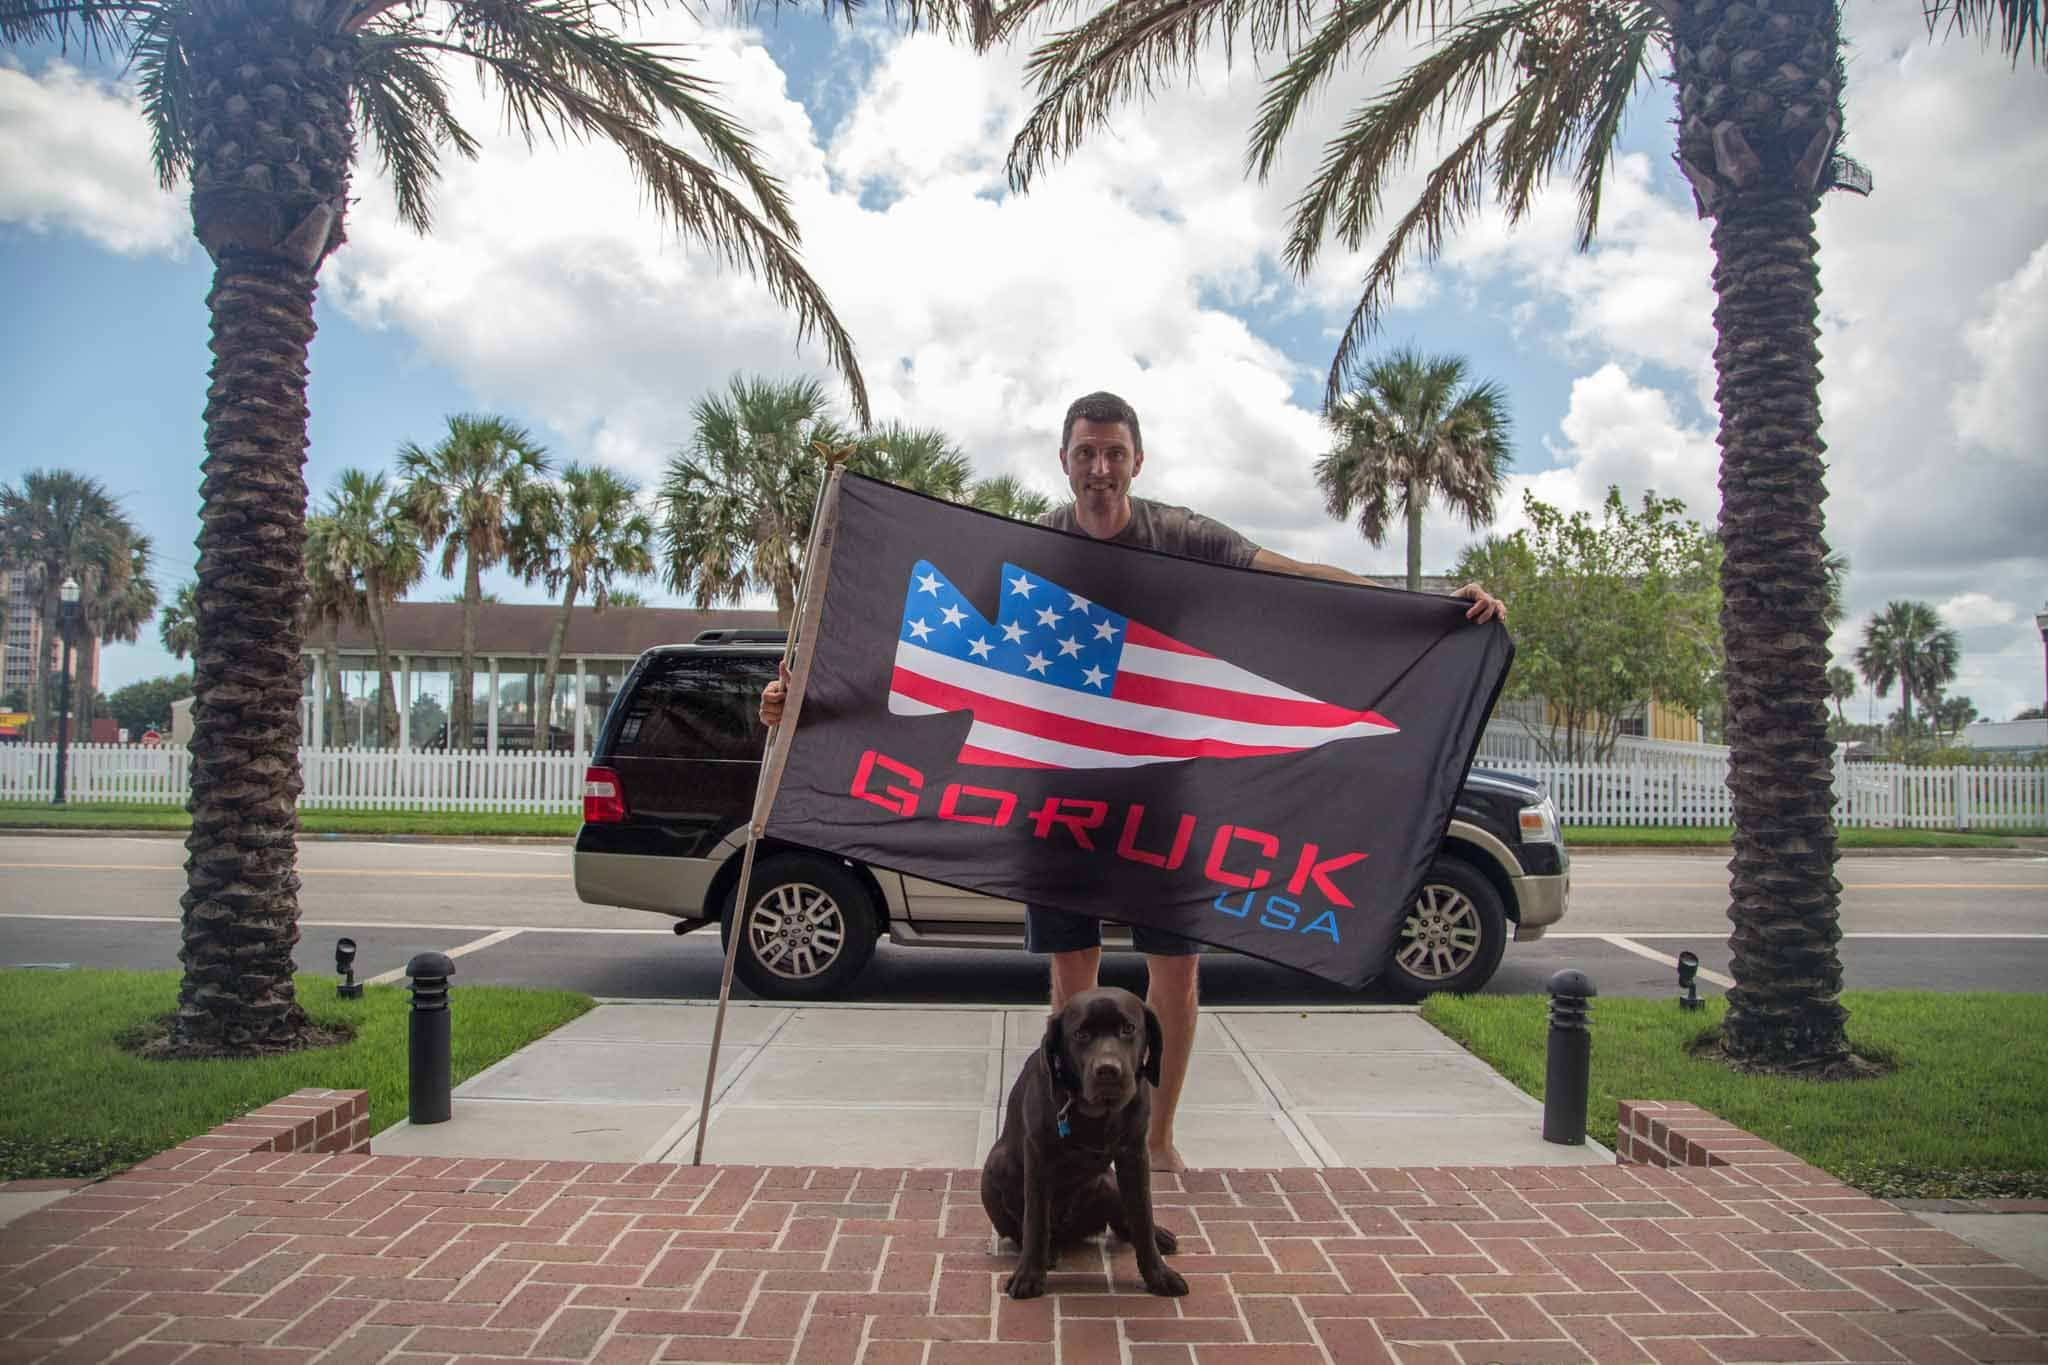 GORUCK USA Flag